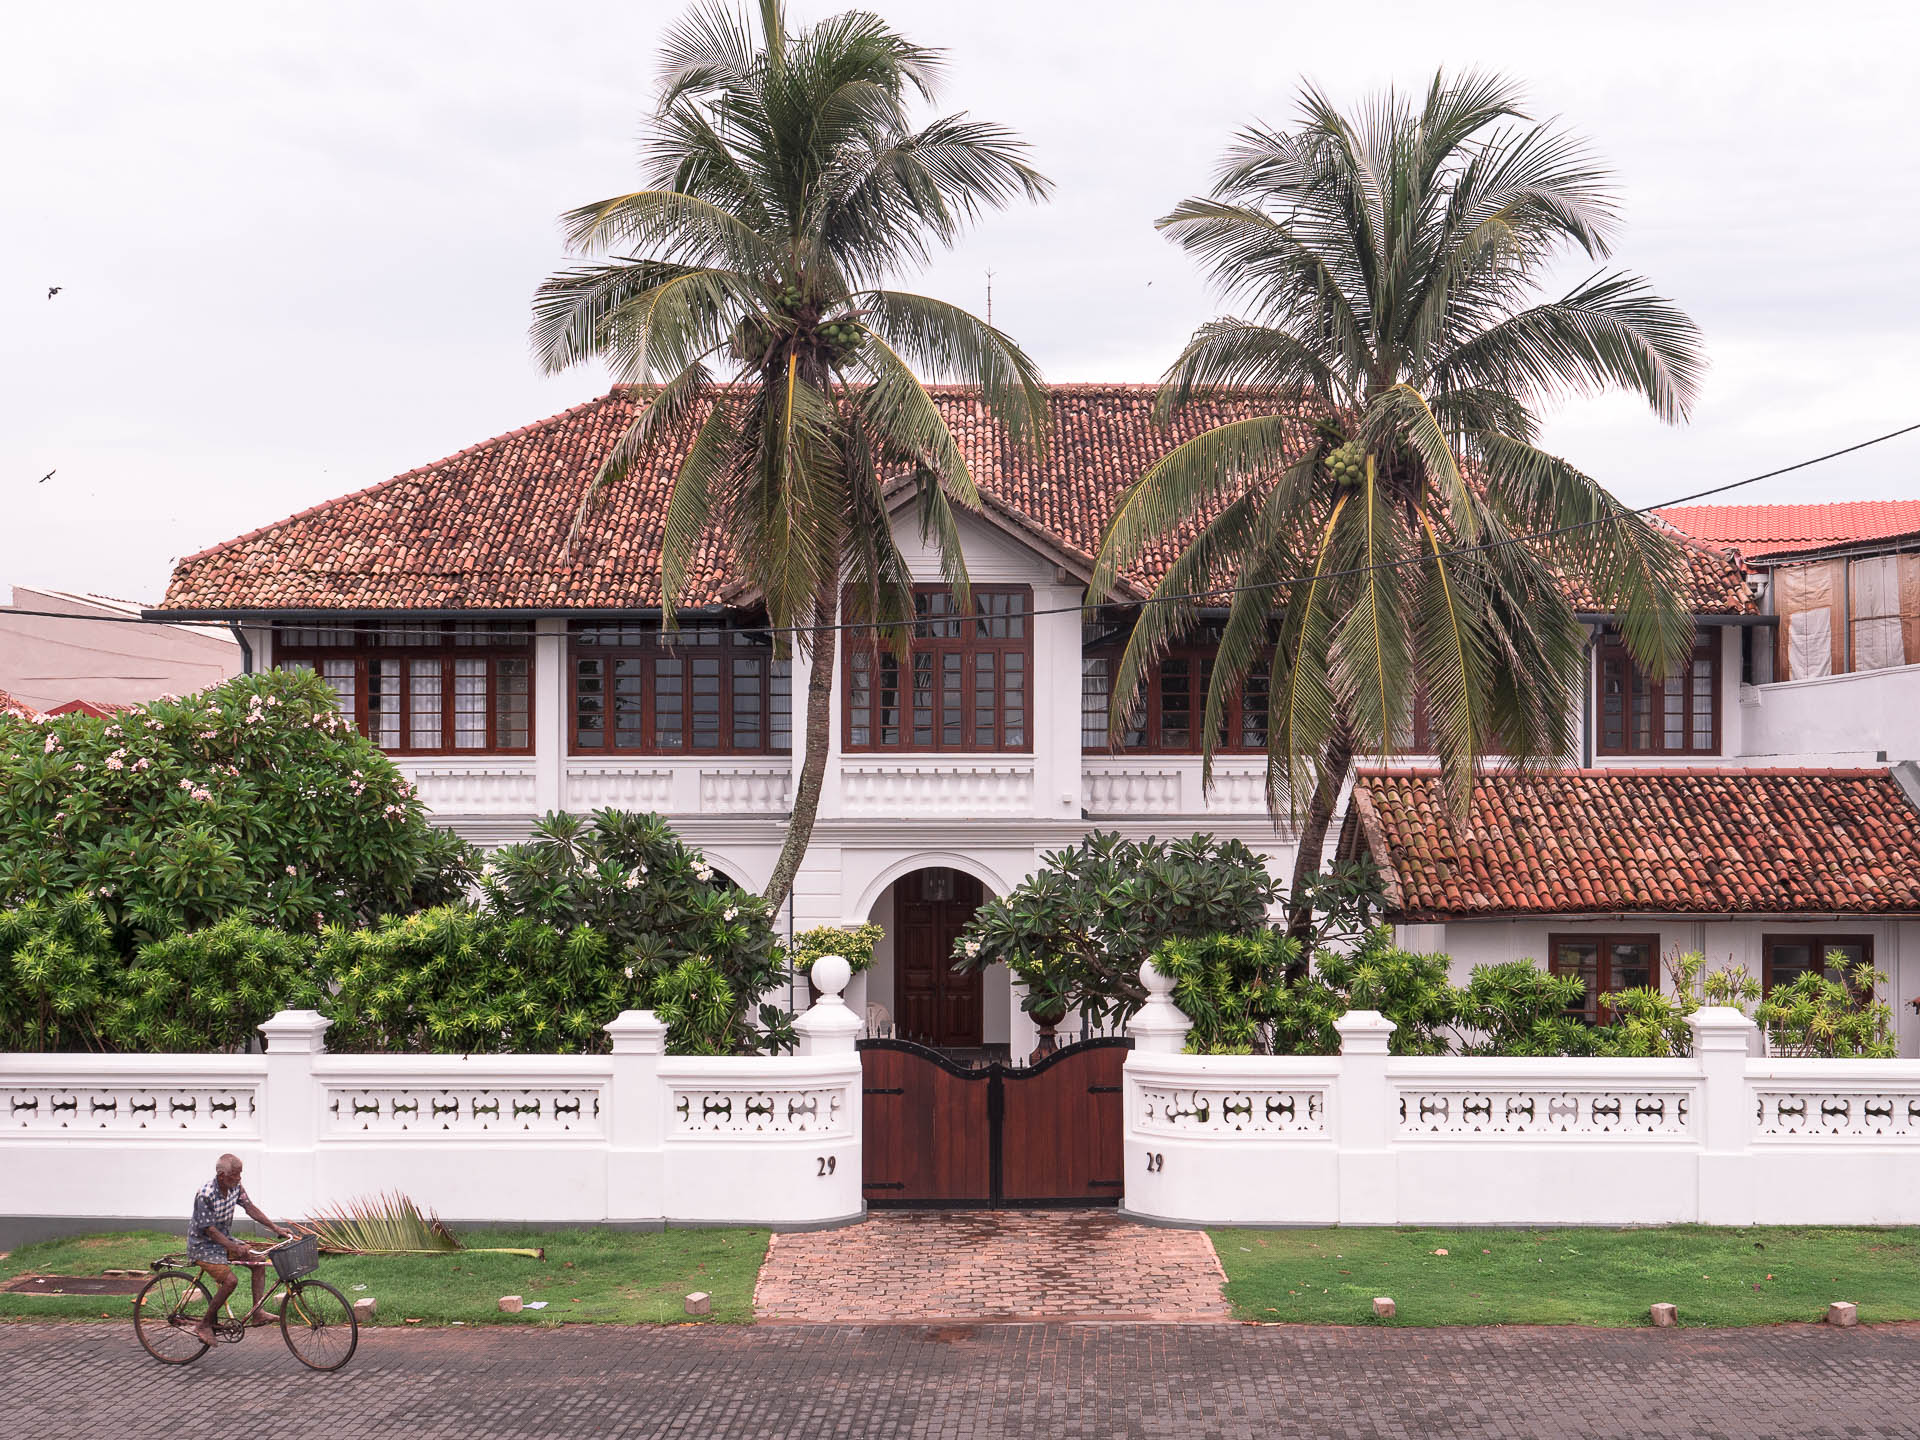 maison coloniale galle Sri lanka